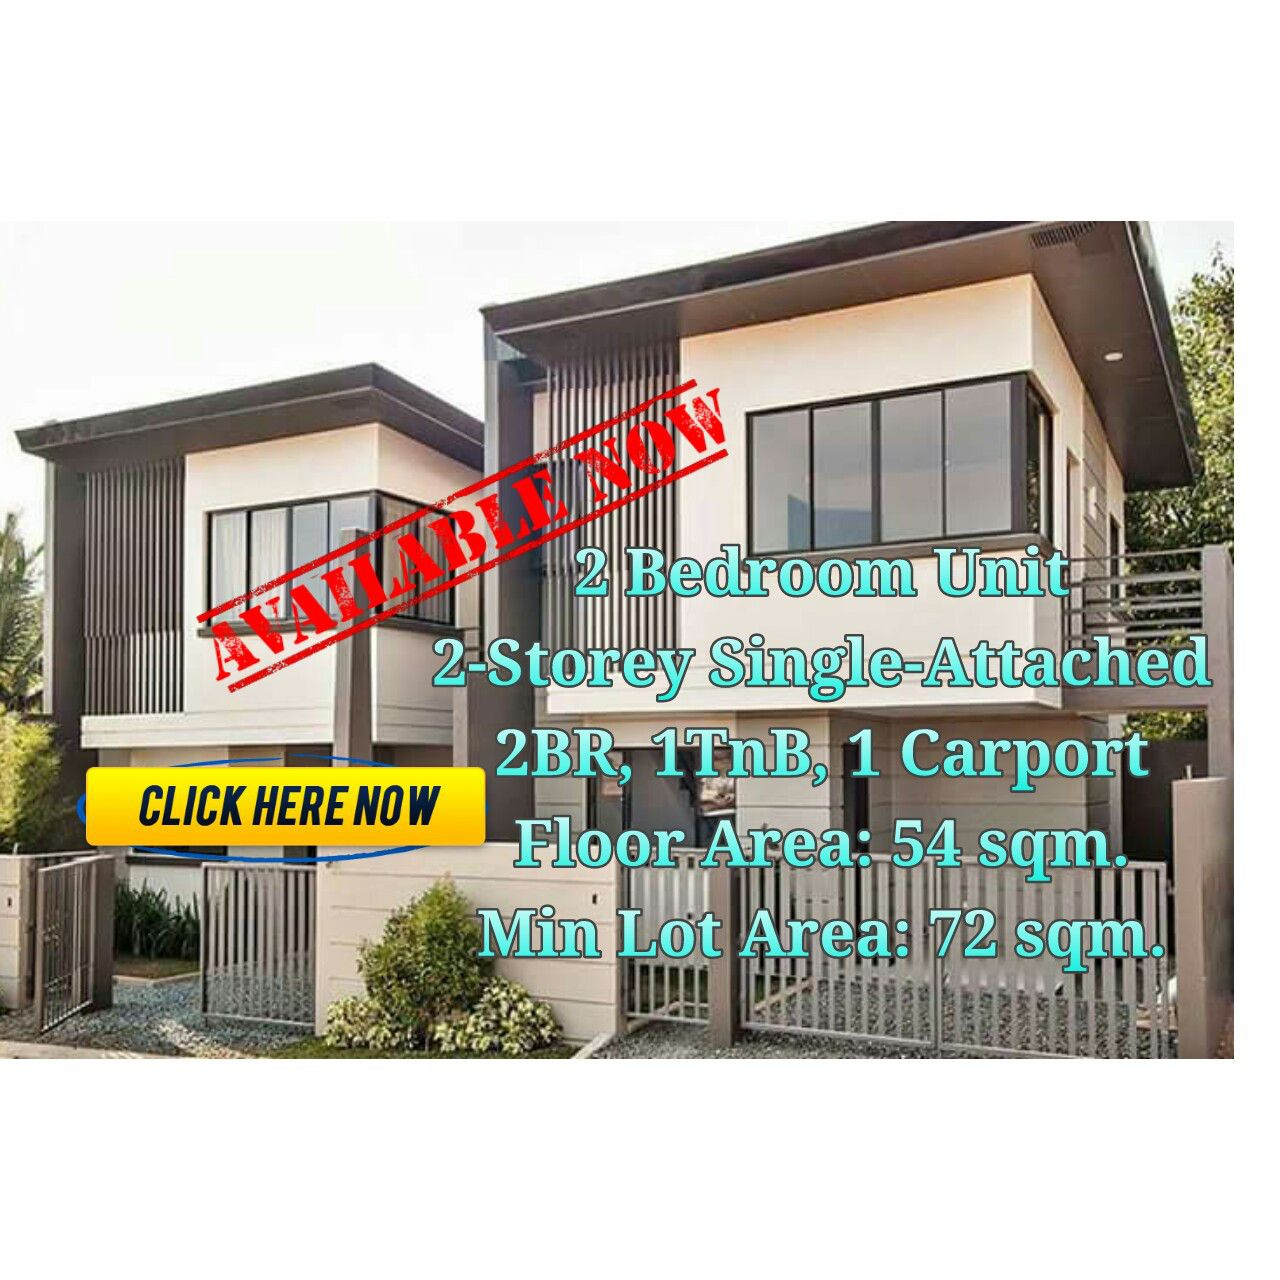 More ideas from phildove homes bloomfield east  mahabang parang angono rizal newest pre selling development in at antipolo also phildovehomes on pinterest rh